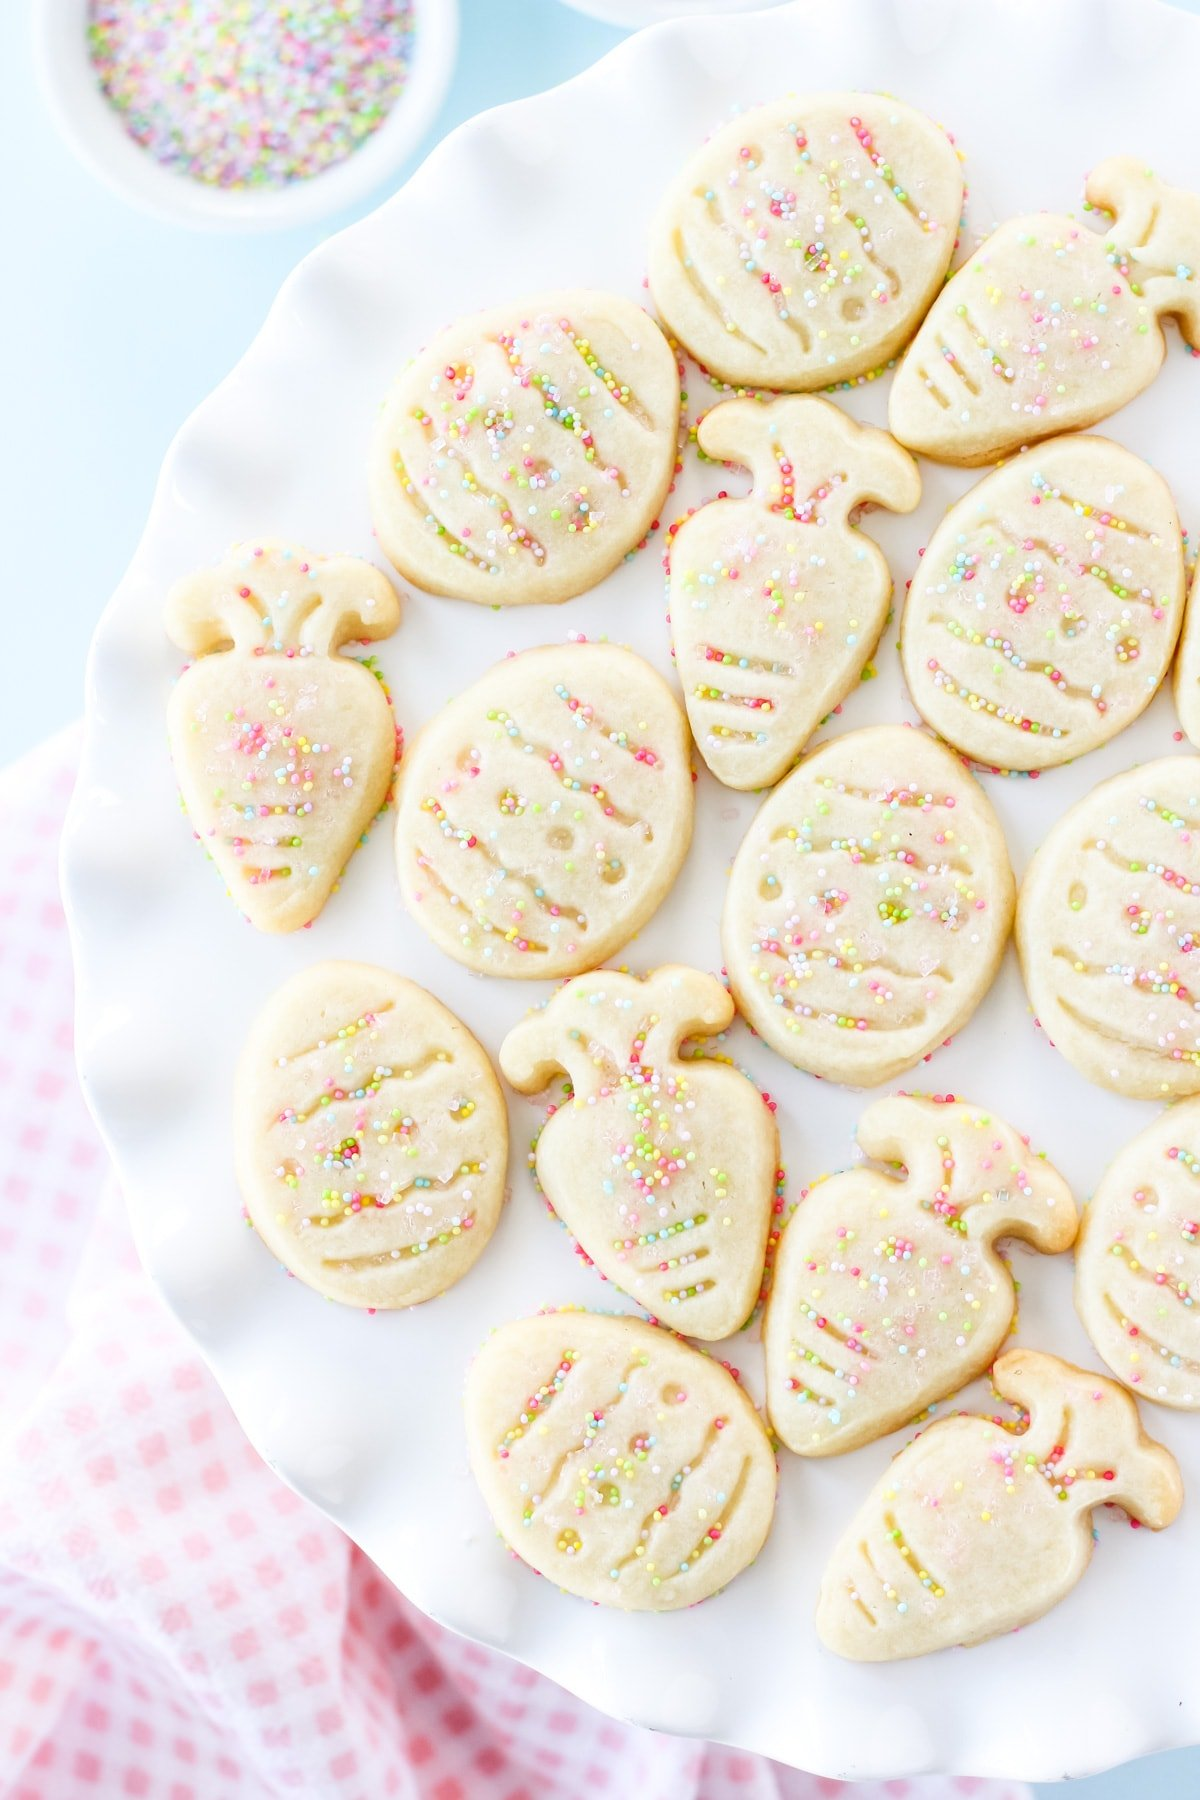 a white cake plate full of shortbread cut out cookies in the shapes of Easter eggs and carrots. in the background are small bowls of pastel colour sprinkles and a pink checked napkin